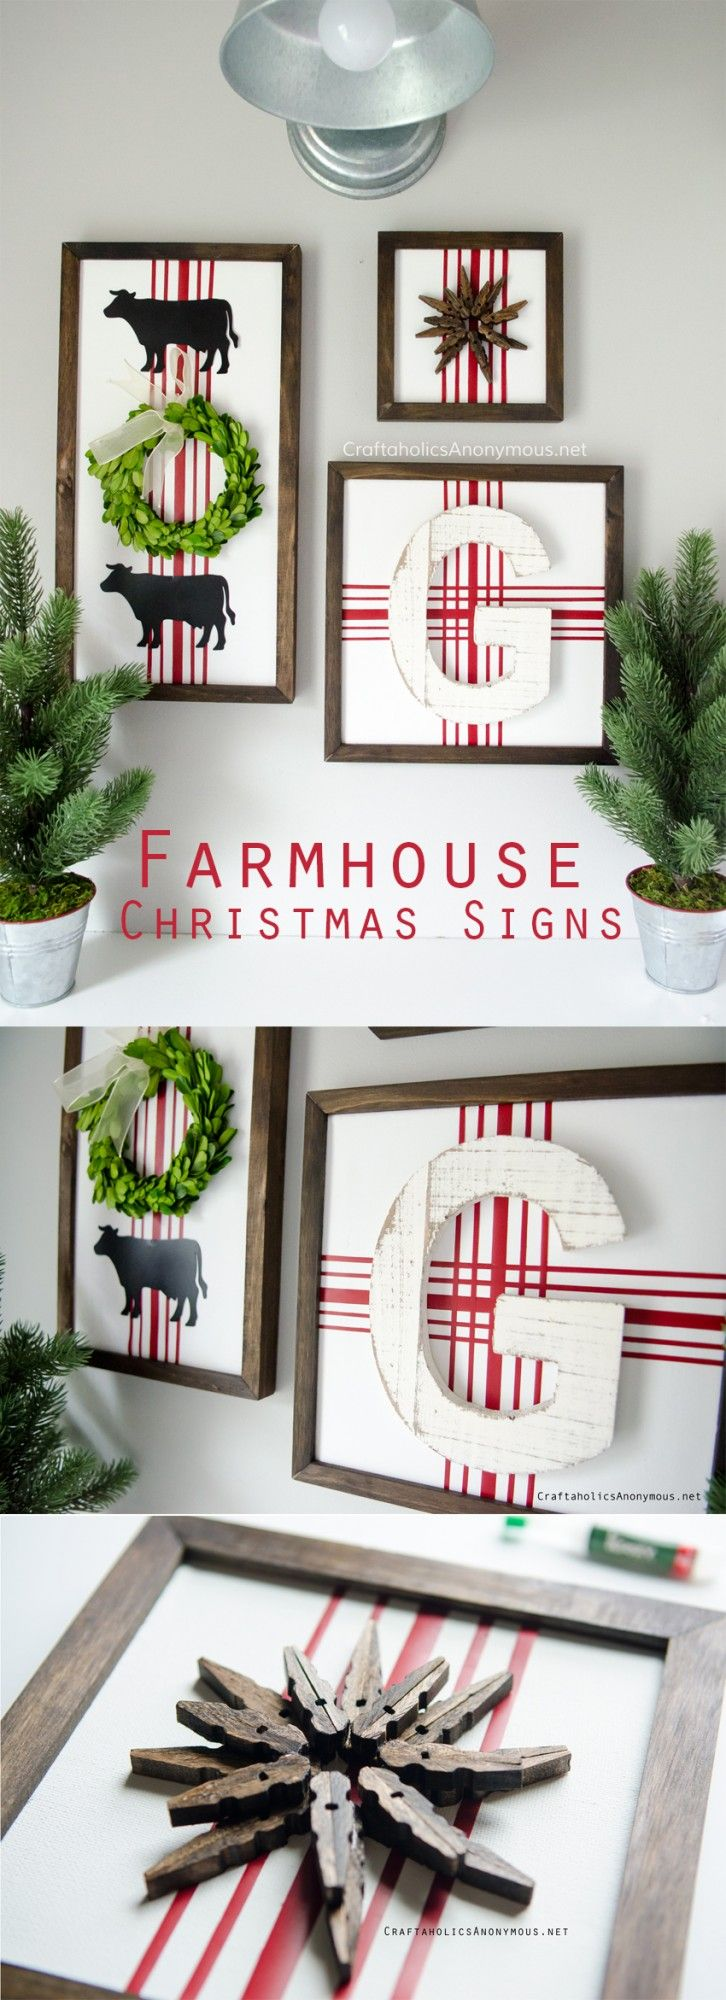 DIY Farmhouse Christmas Signs in red and white with vintage grain sack lines.